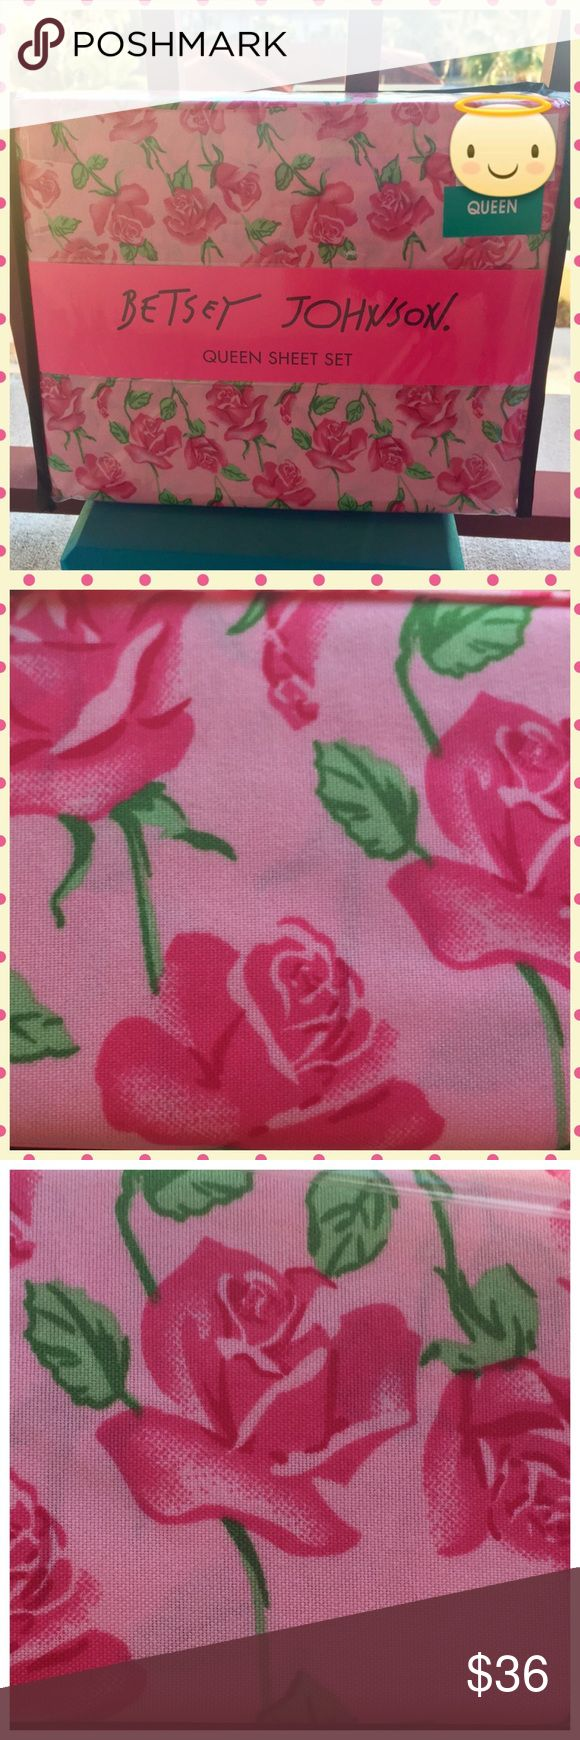 Betsey Johnson Pink Floral Vine Queen Sheet Set Betsey Johnson Pink Floral Vine Queen Sheet Set Betsey Johnson Other